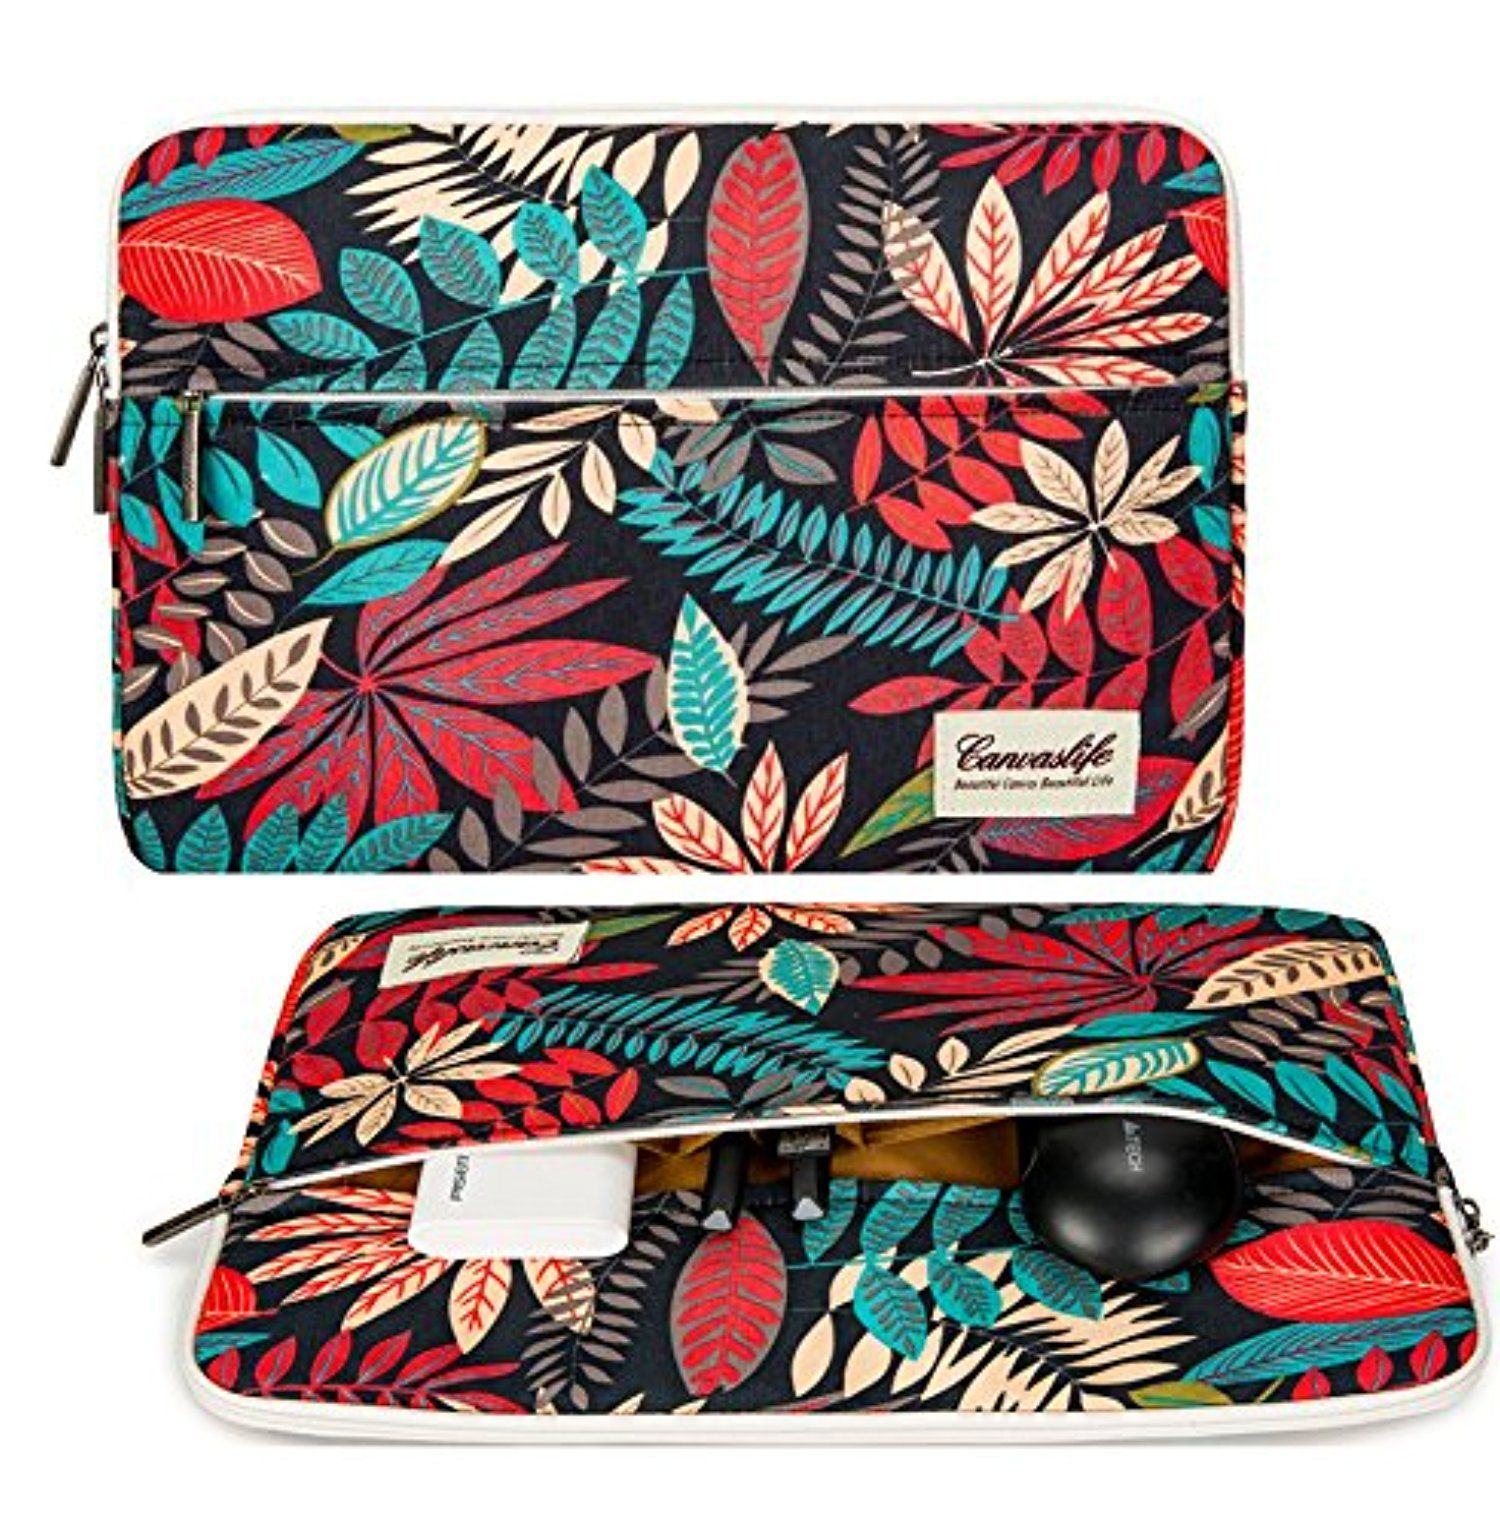 Canvaslife Colorful Leaves Laptop Sleeve 15 Inch Macbook Pro 15 Case And 15 6 Laptop Bag Awesome Produc Cute Laptop Cases Laptop Sleeves Macbook Air 13 Case